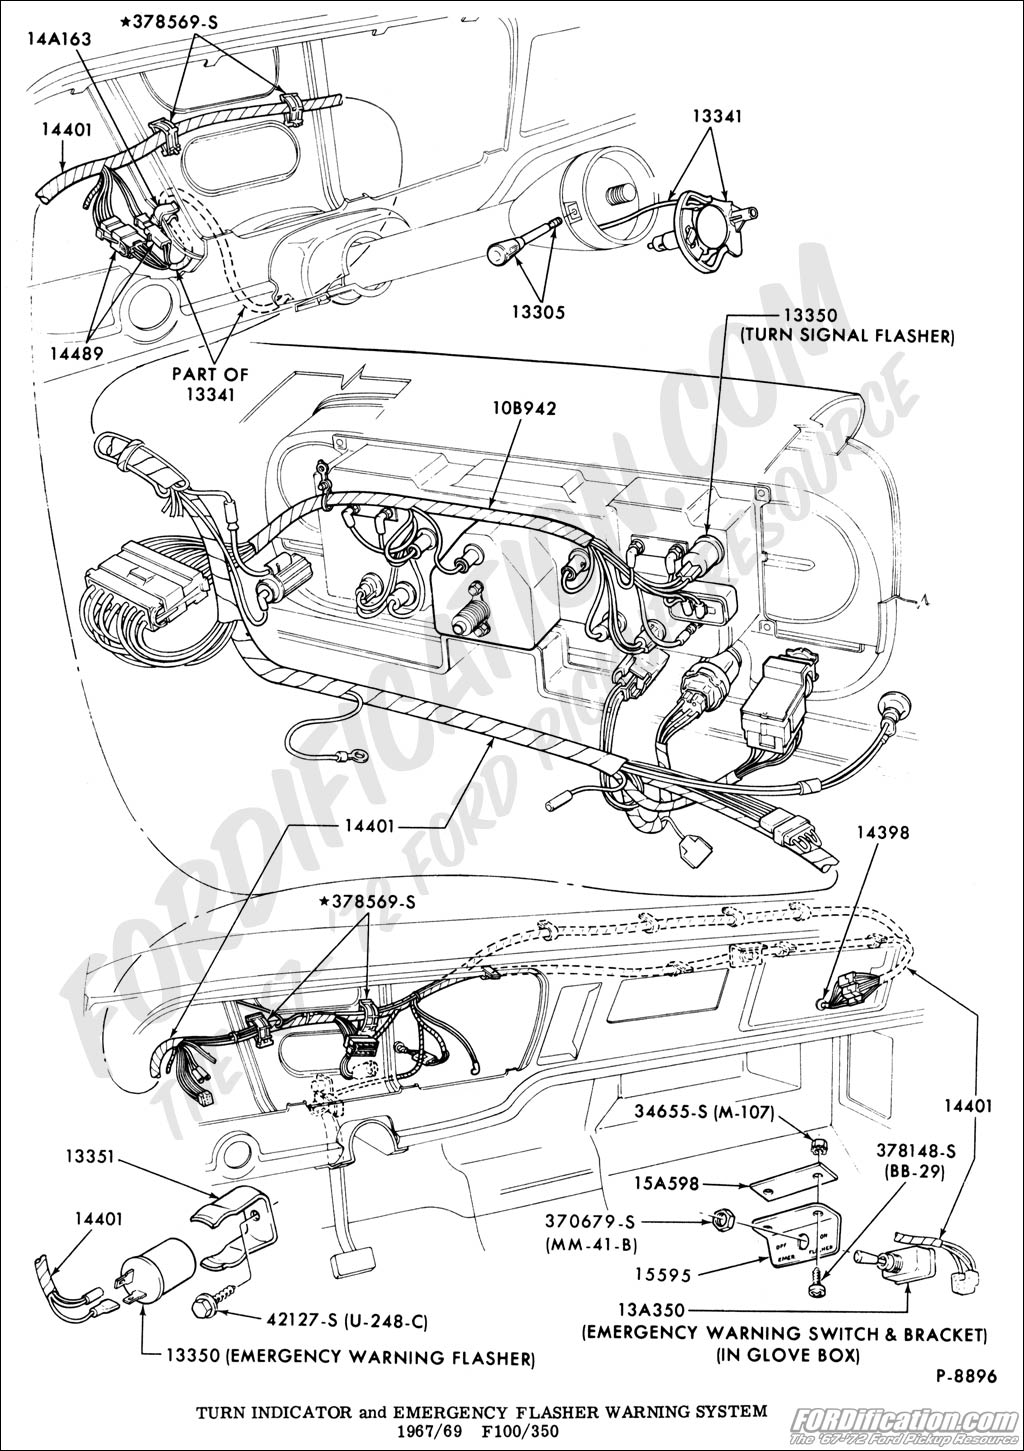 1966 mustang starter wiring diagram 1965 mustang color